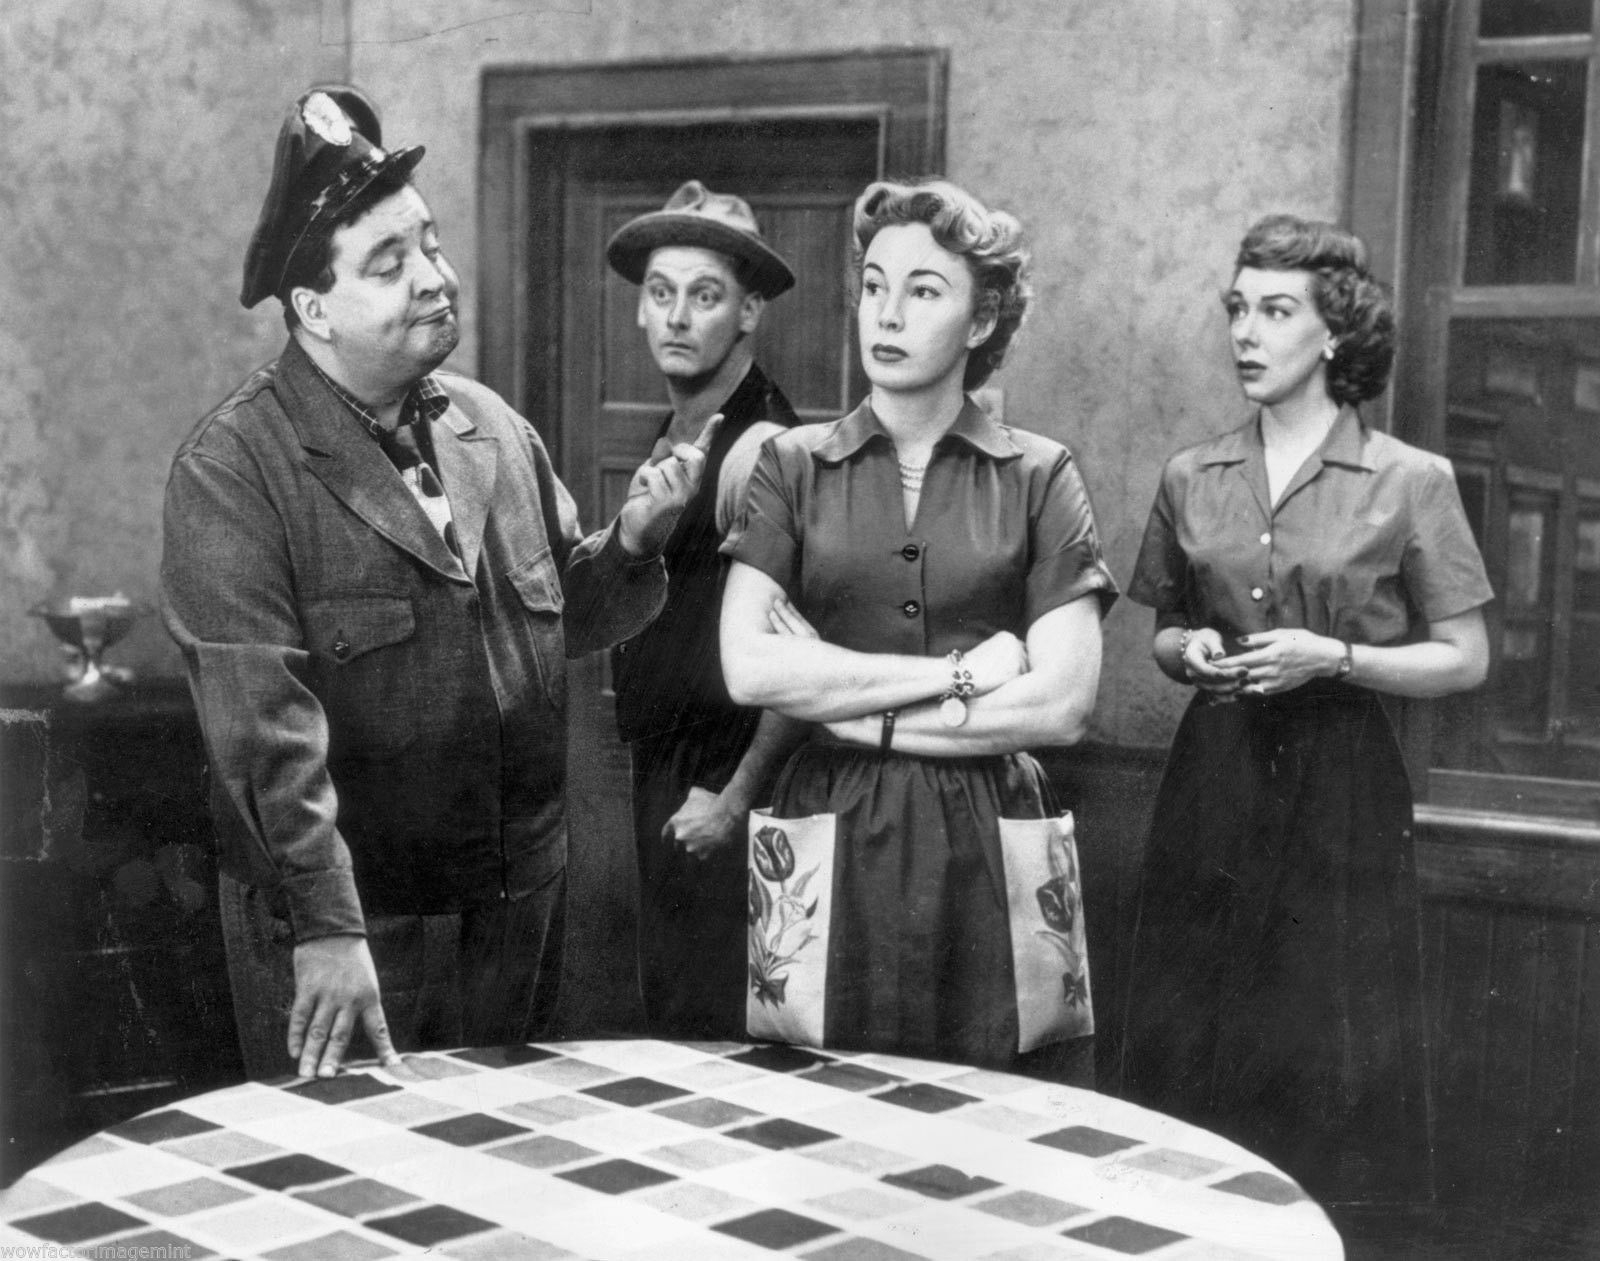 Last of The Honeymooners